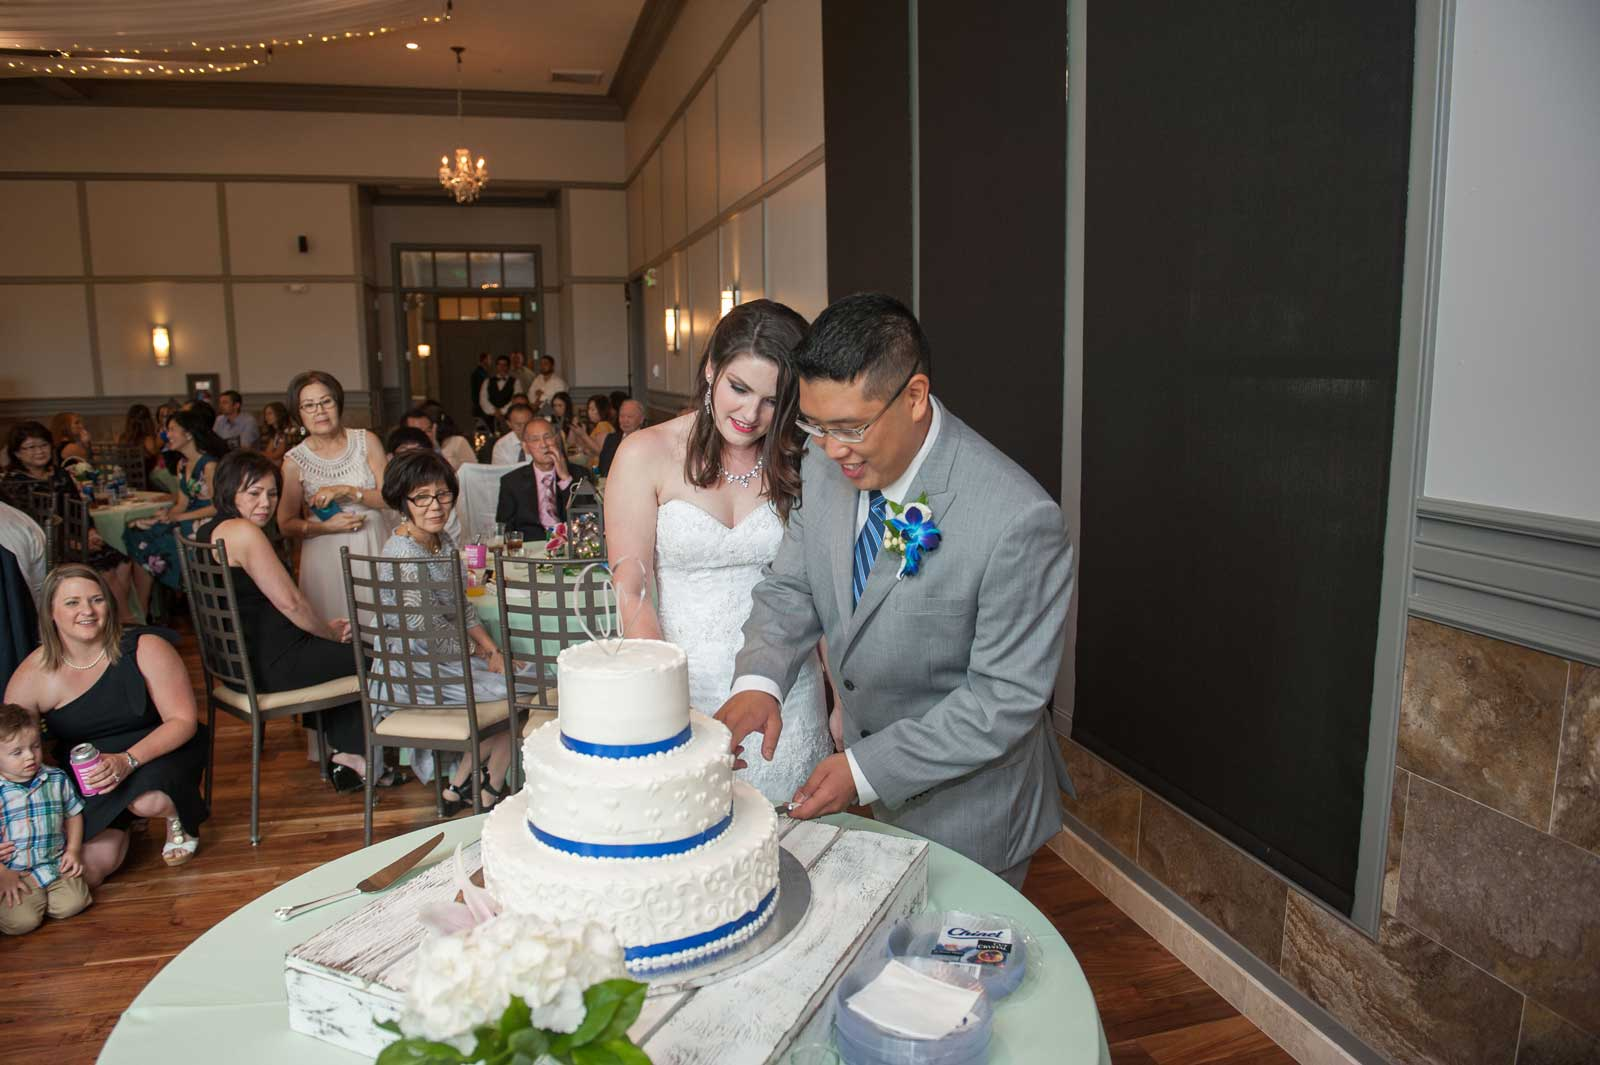 The bride and groom share cake at The Ark in Katy